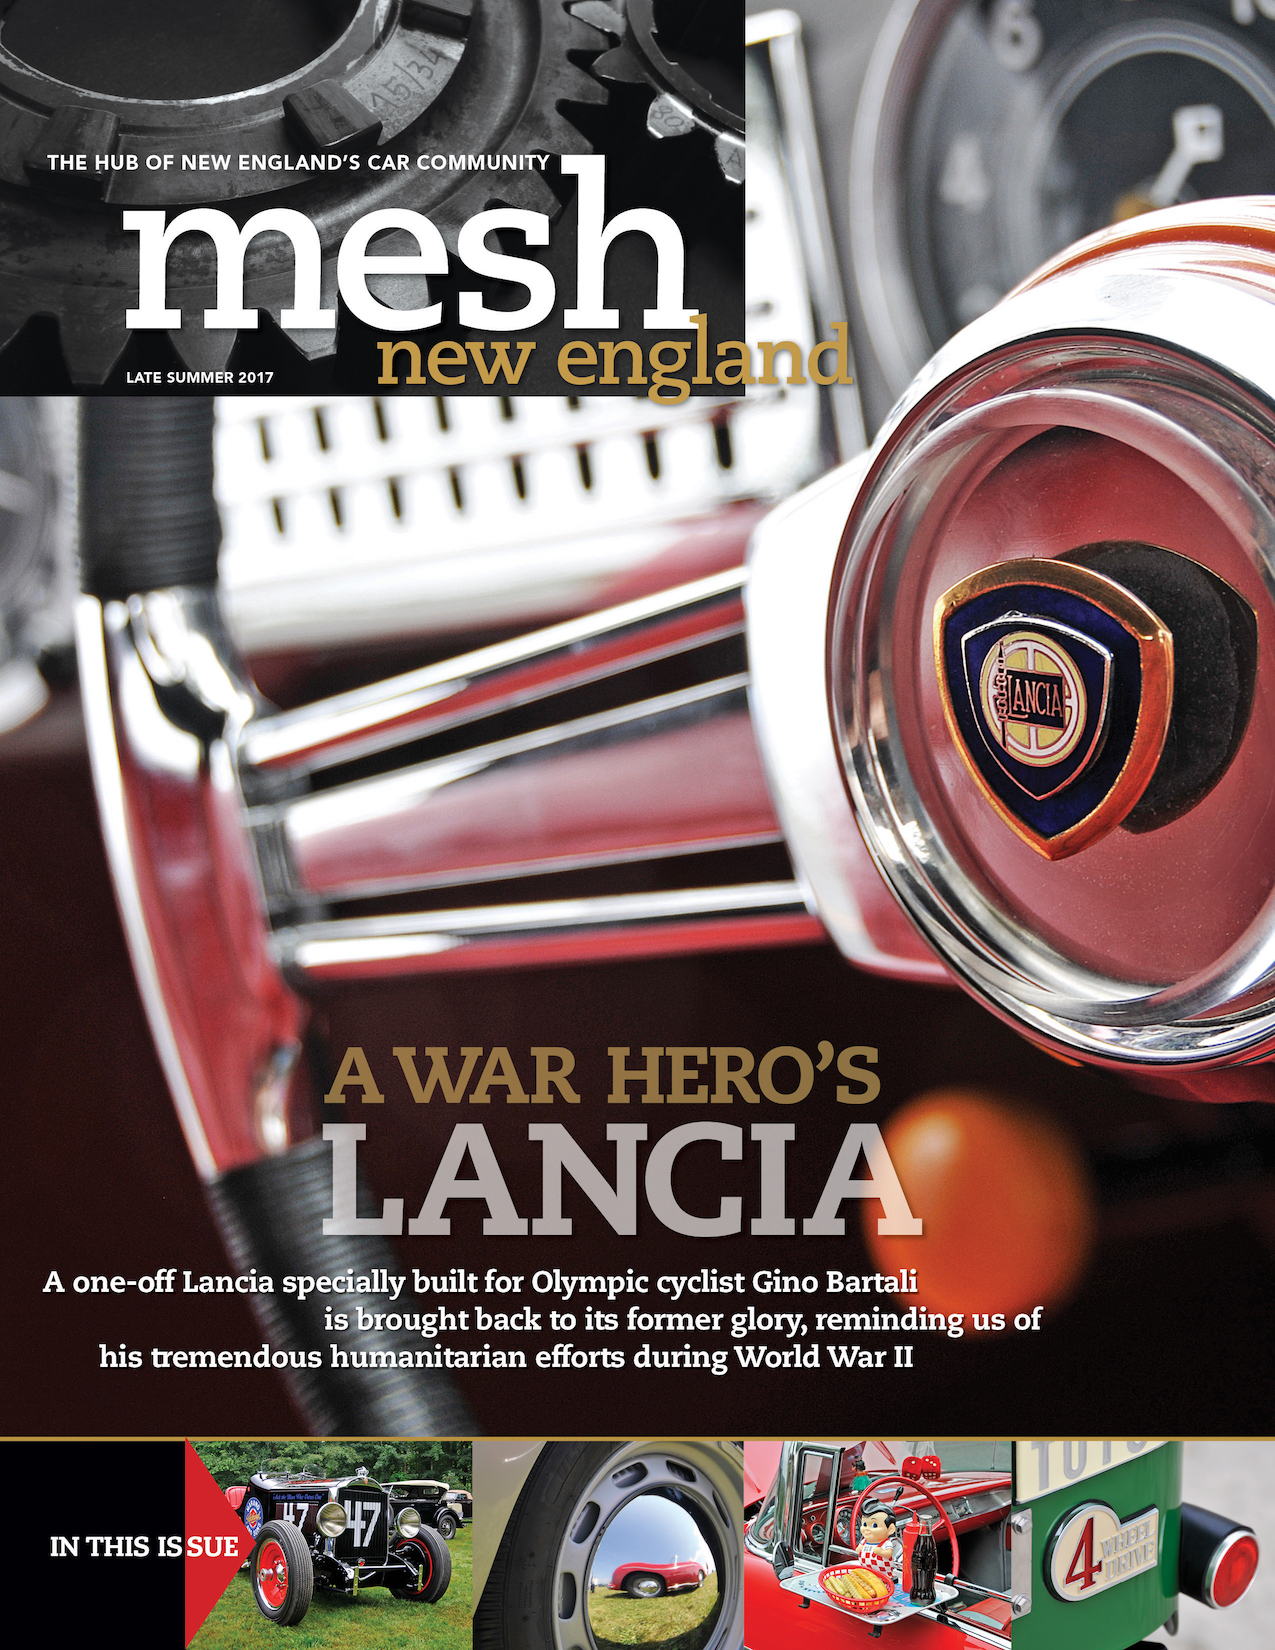 Late summer 2017 cover of mesh new england magazine a Lancia pctured on the front.jpg